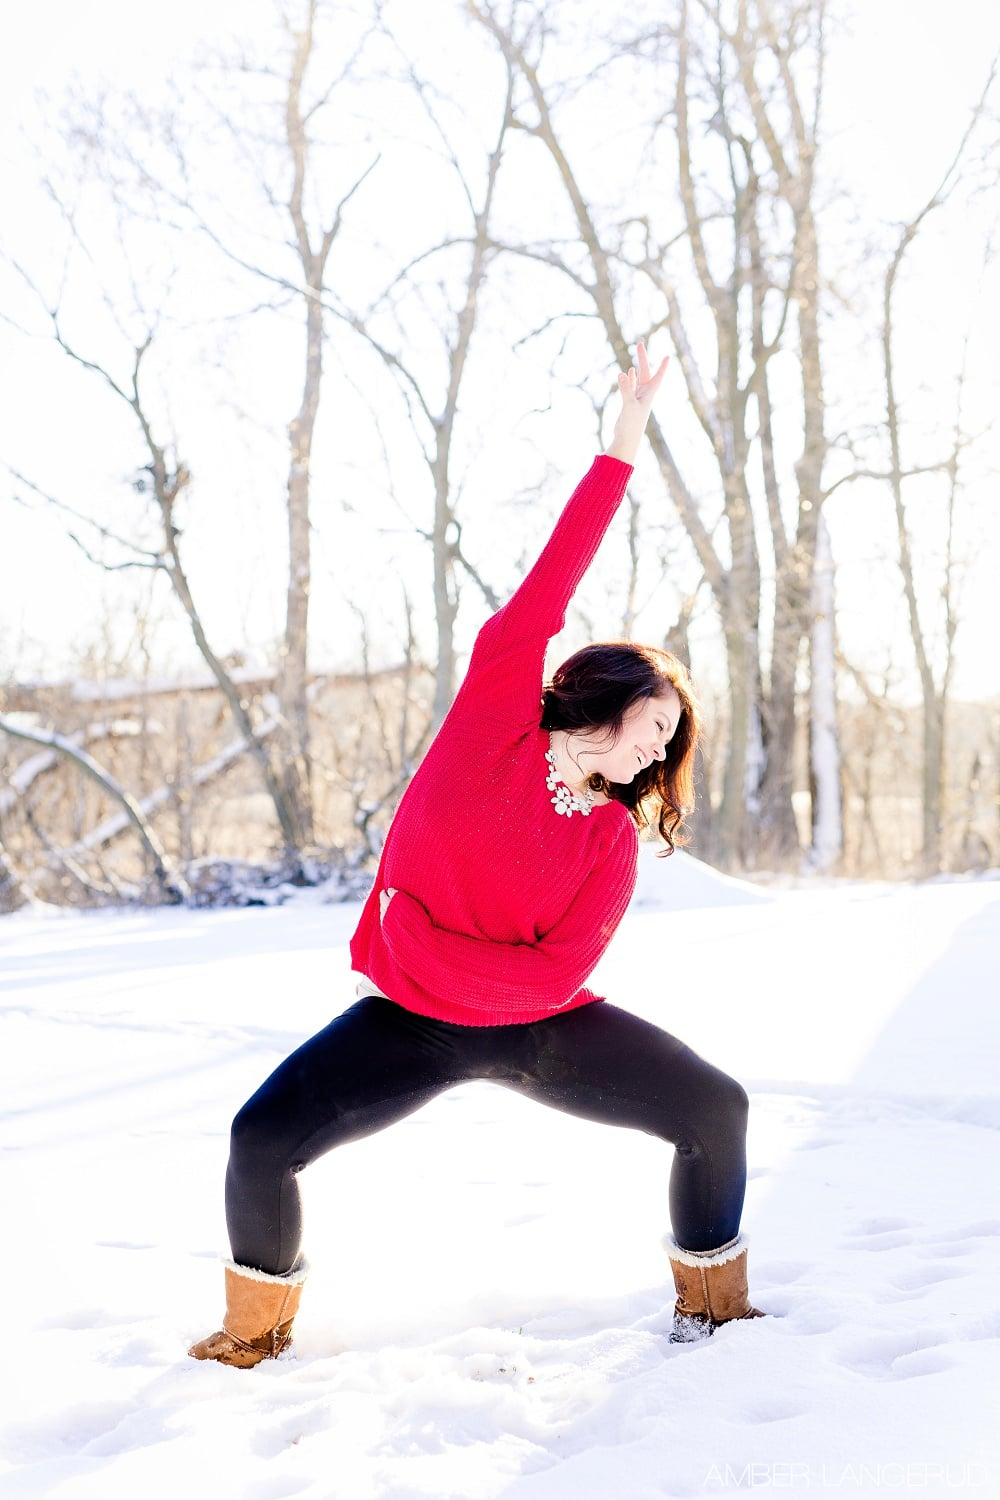 Audubon, MN Outdoor Winter Portraits | Red Sweater & Snow & Dance